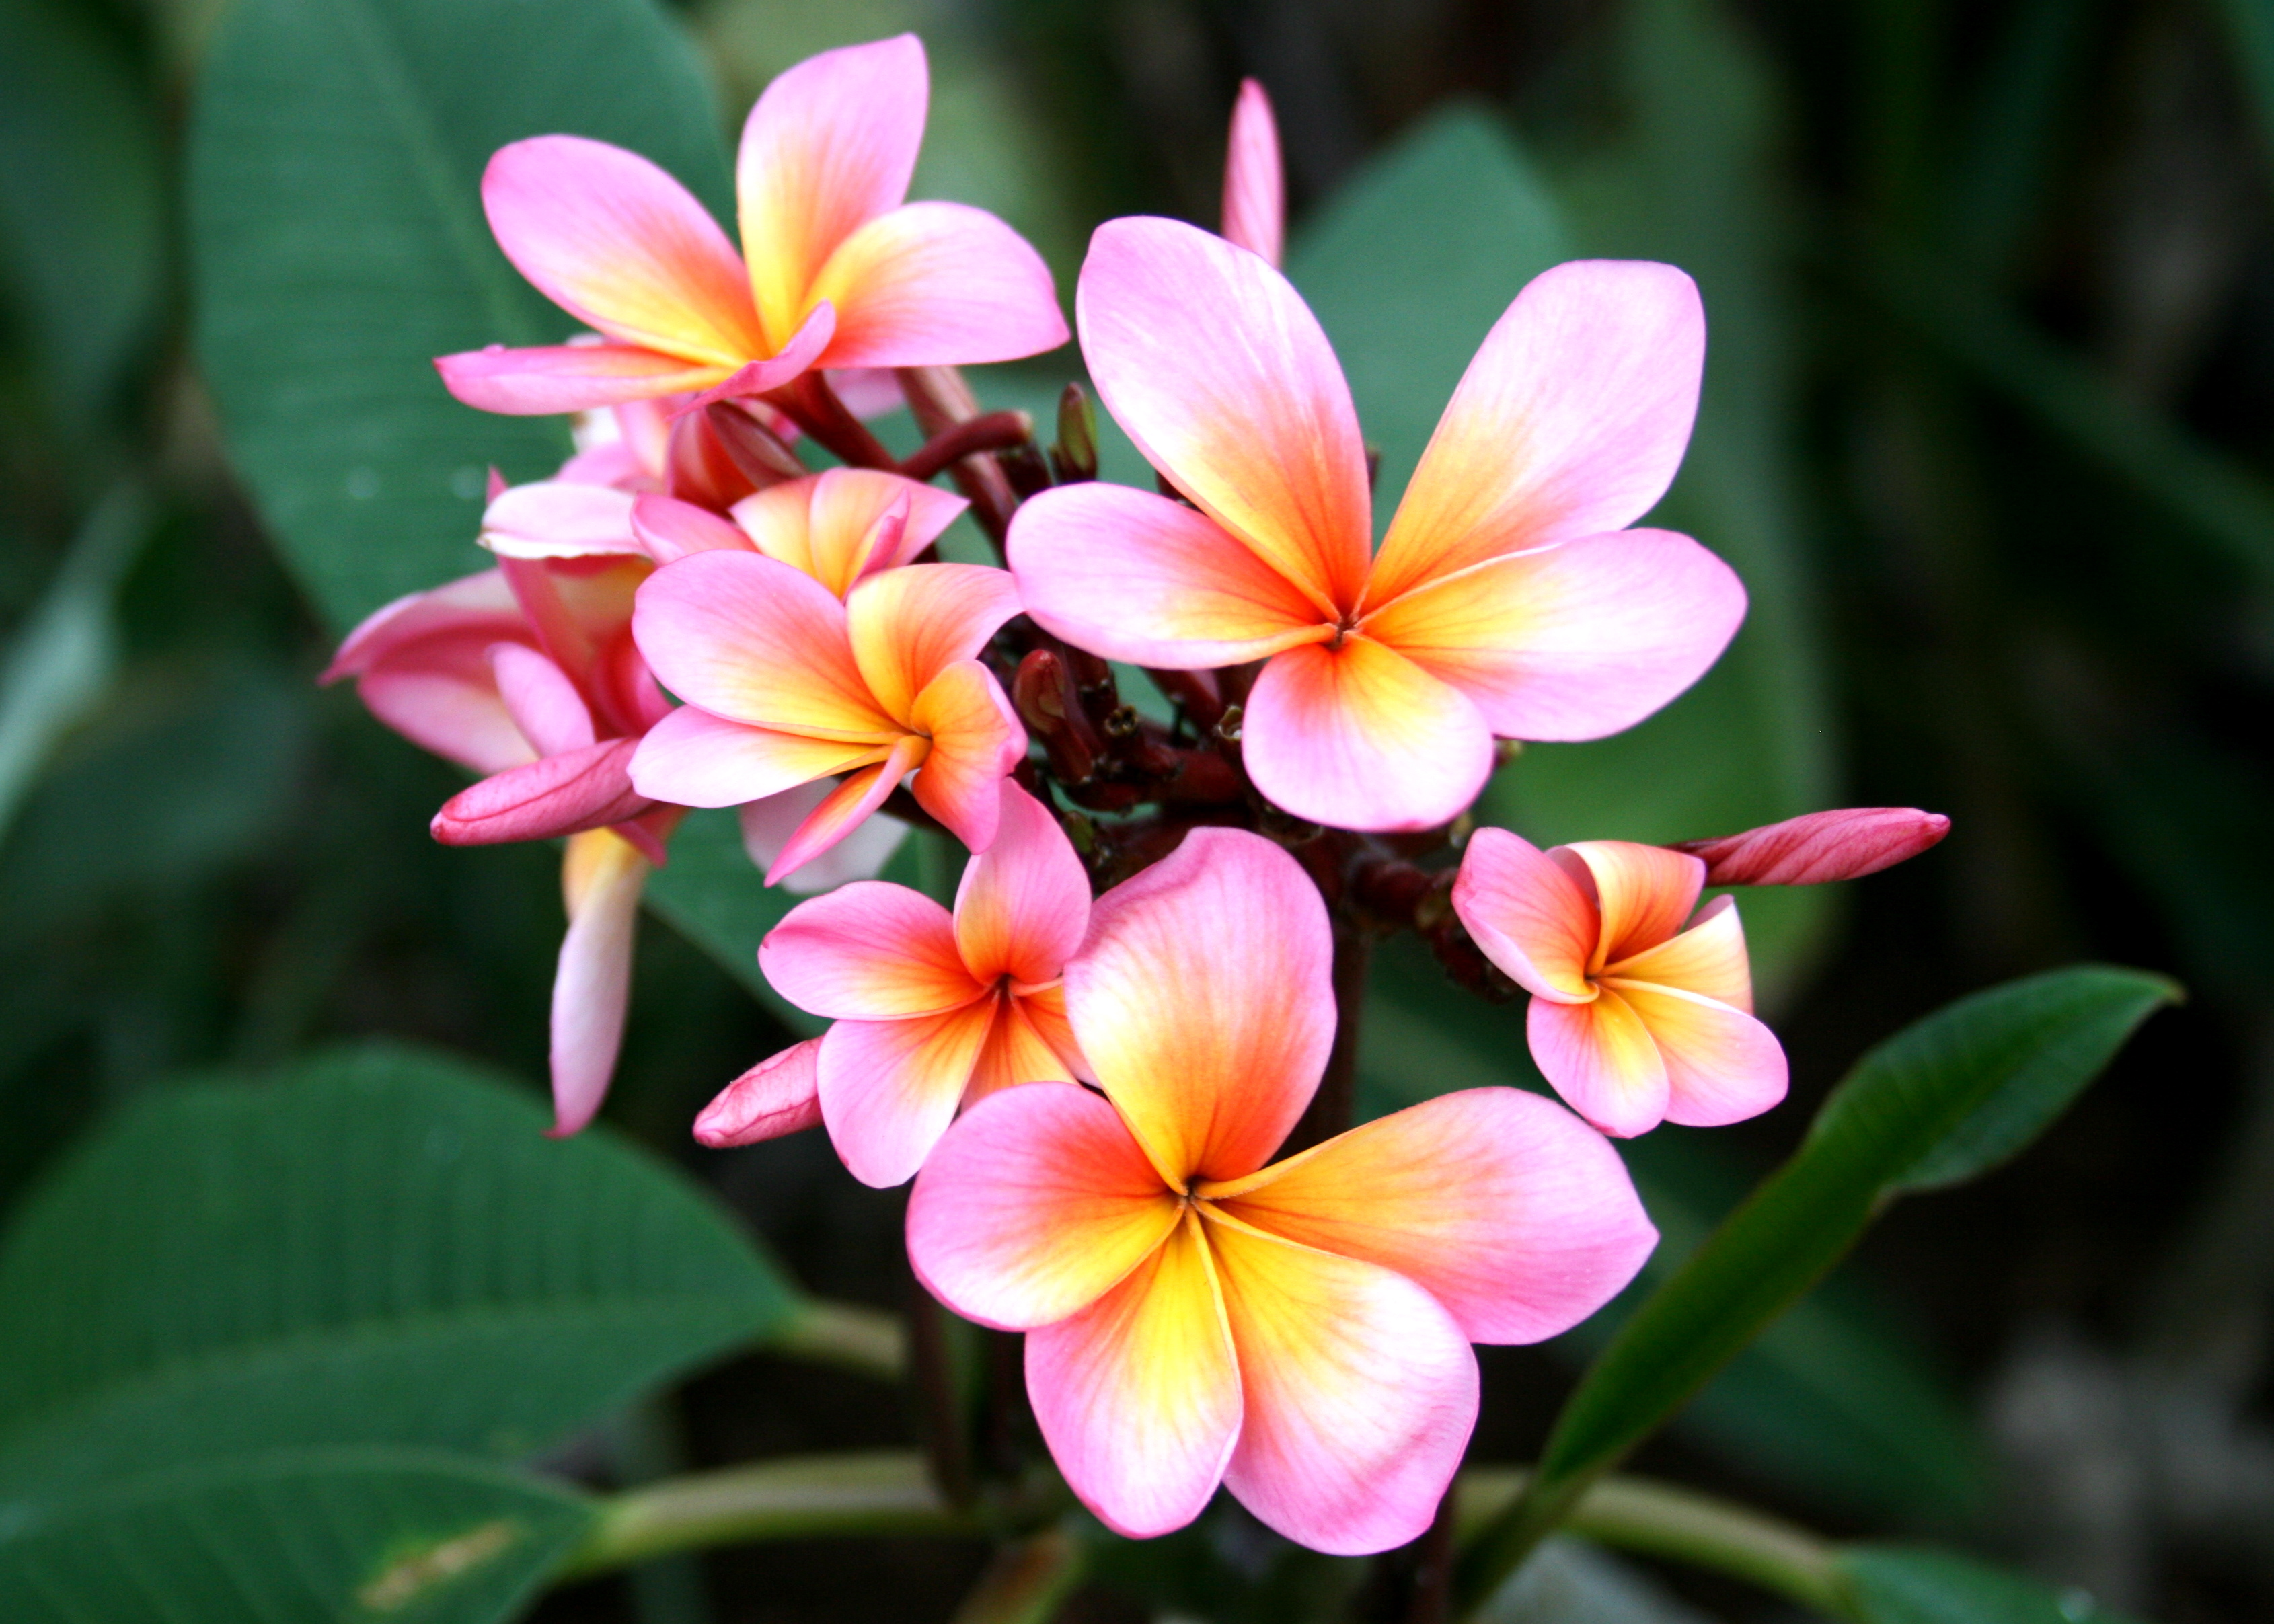 Frangipani High Quality Background on Wallpapers Vista